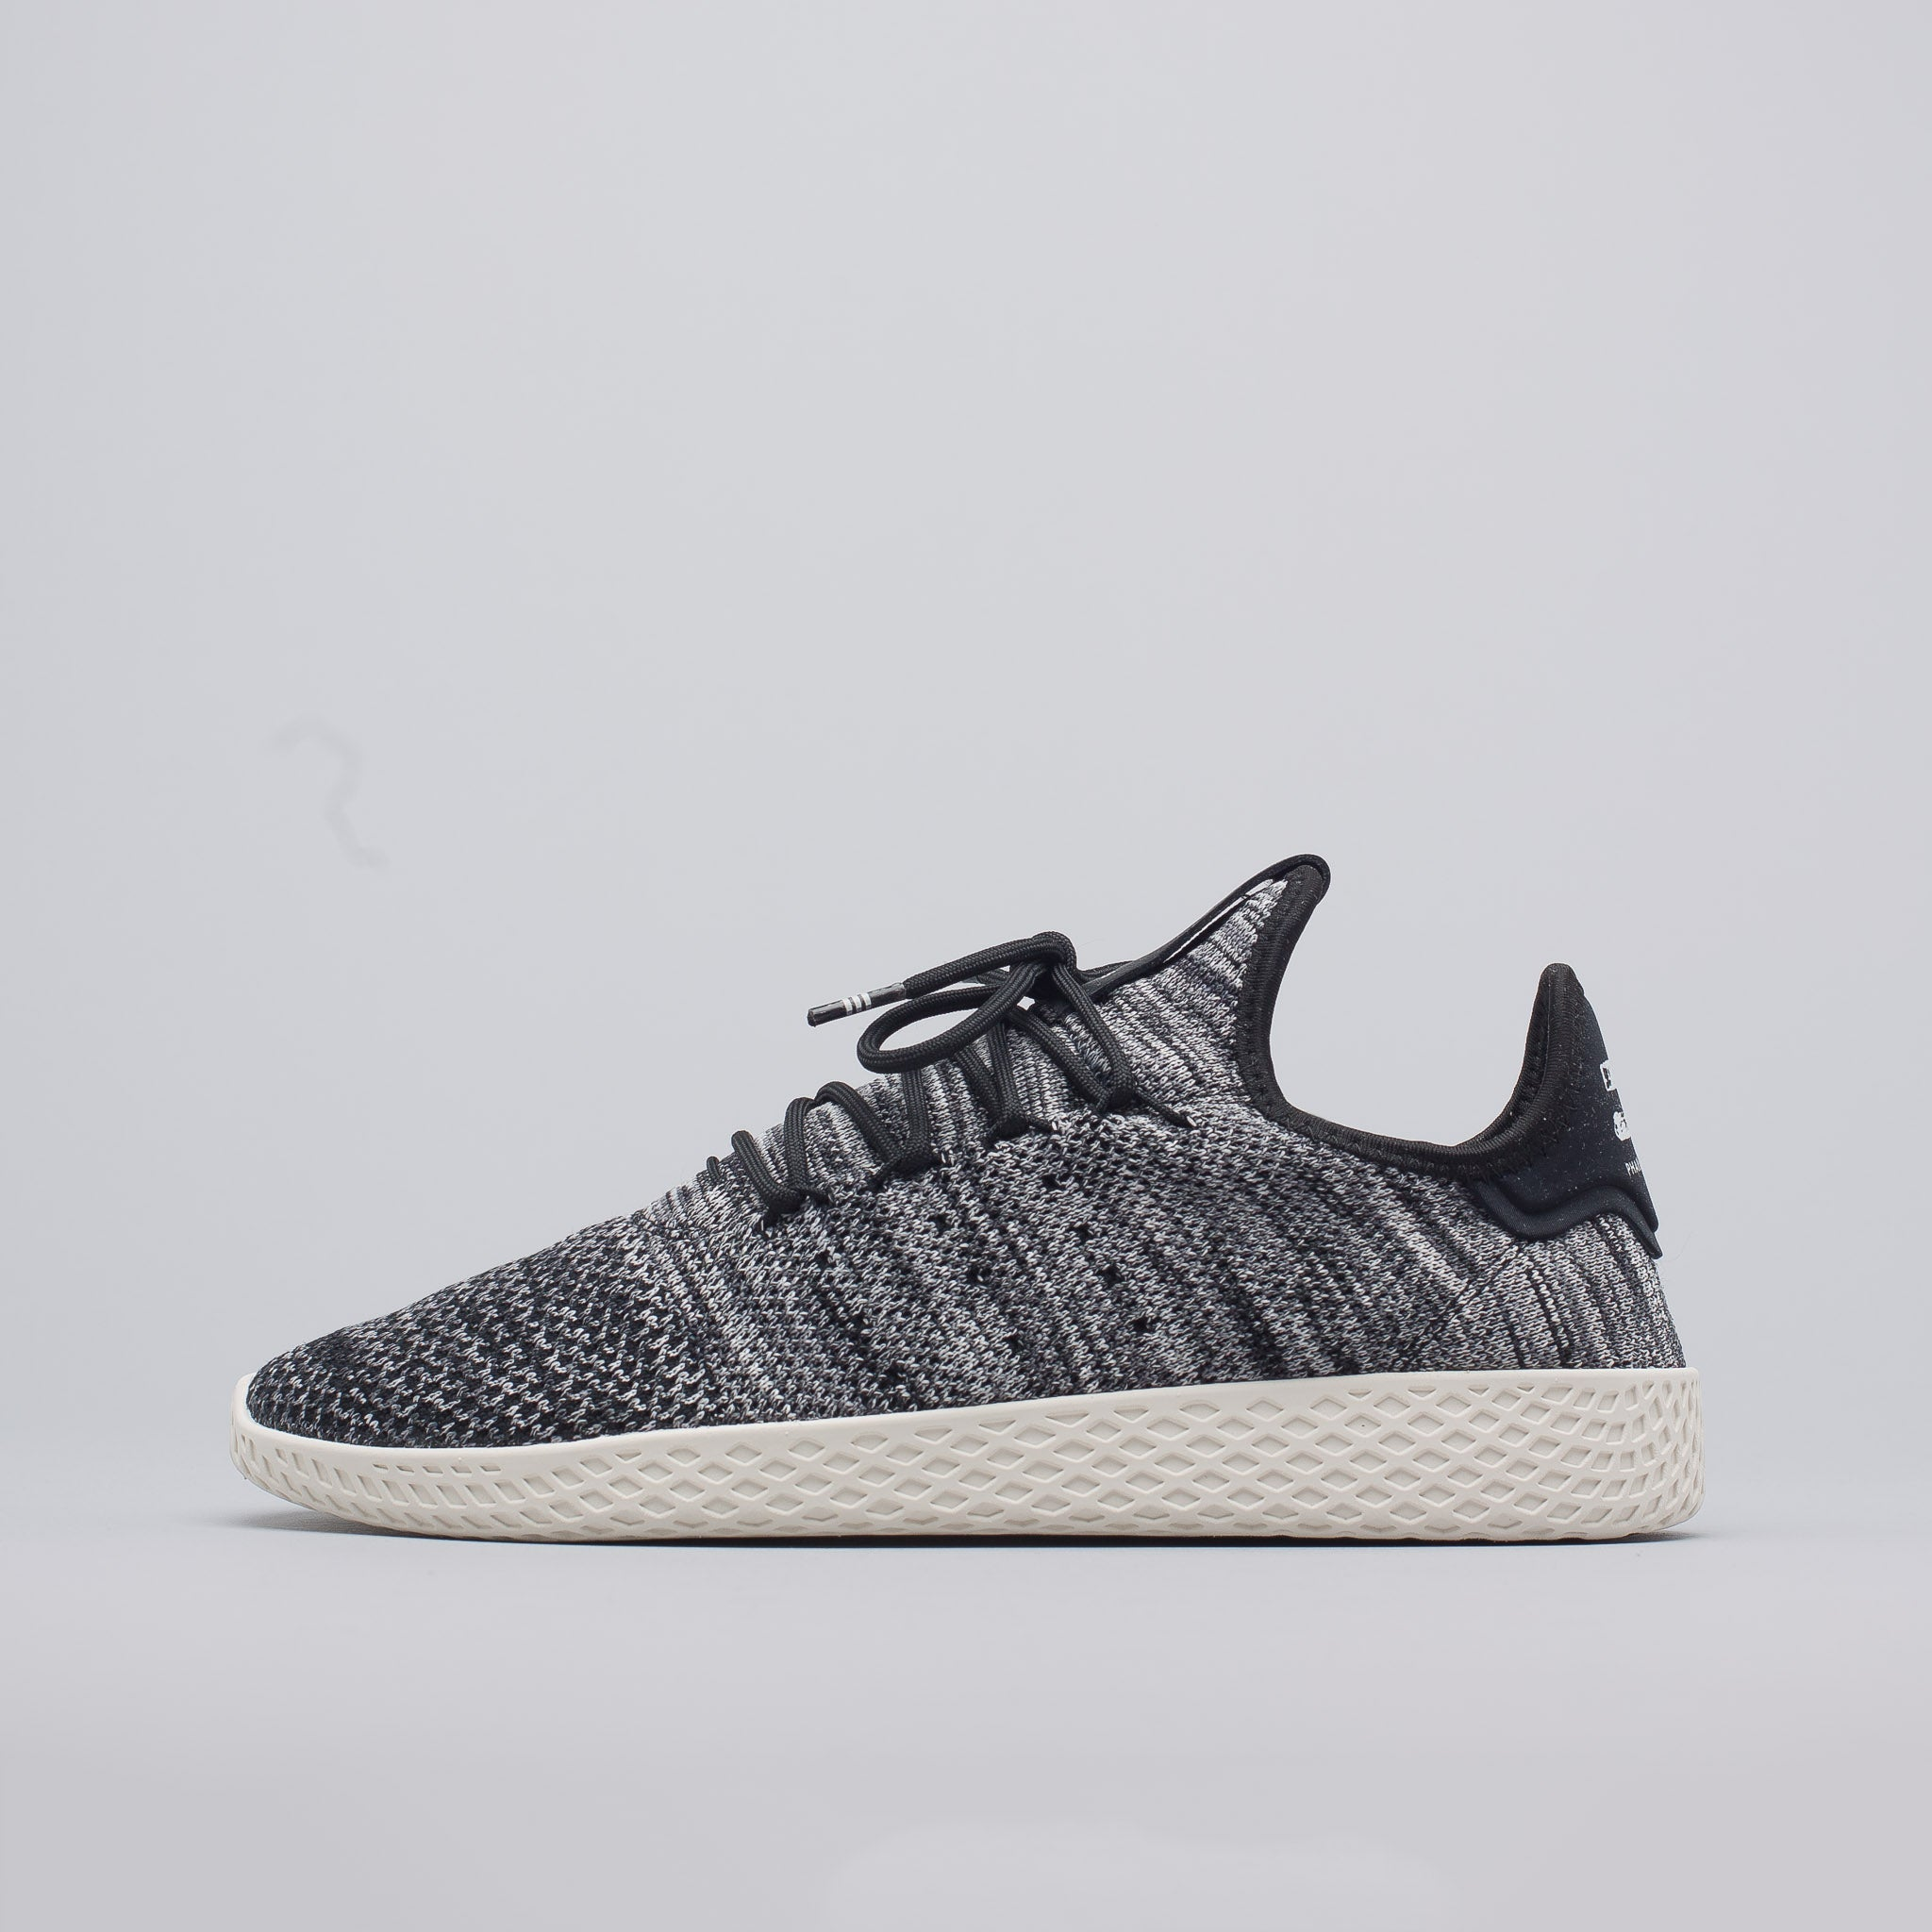 adidas x pharrell williams tennis hu primeknit in oreo notre. Black Bedroom Furniture Sets. Home Design Ideas